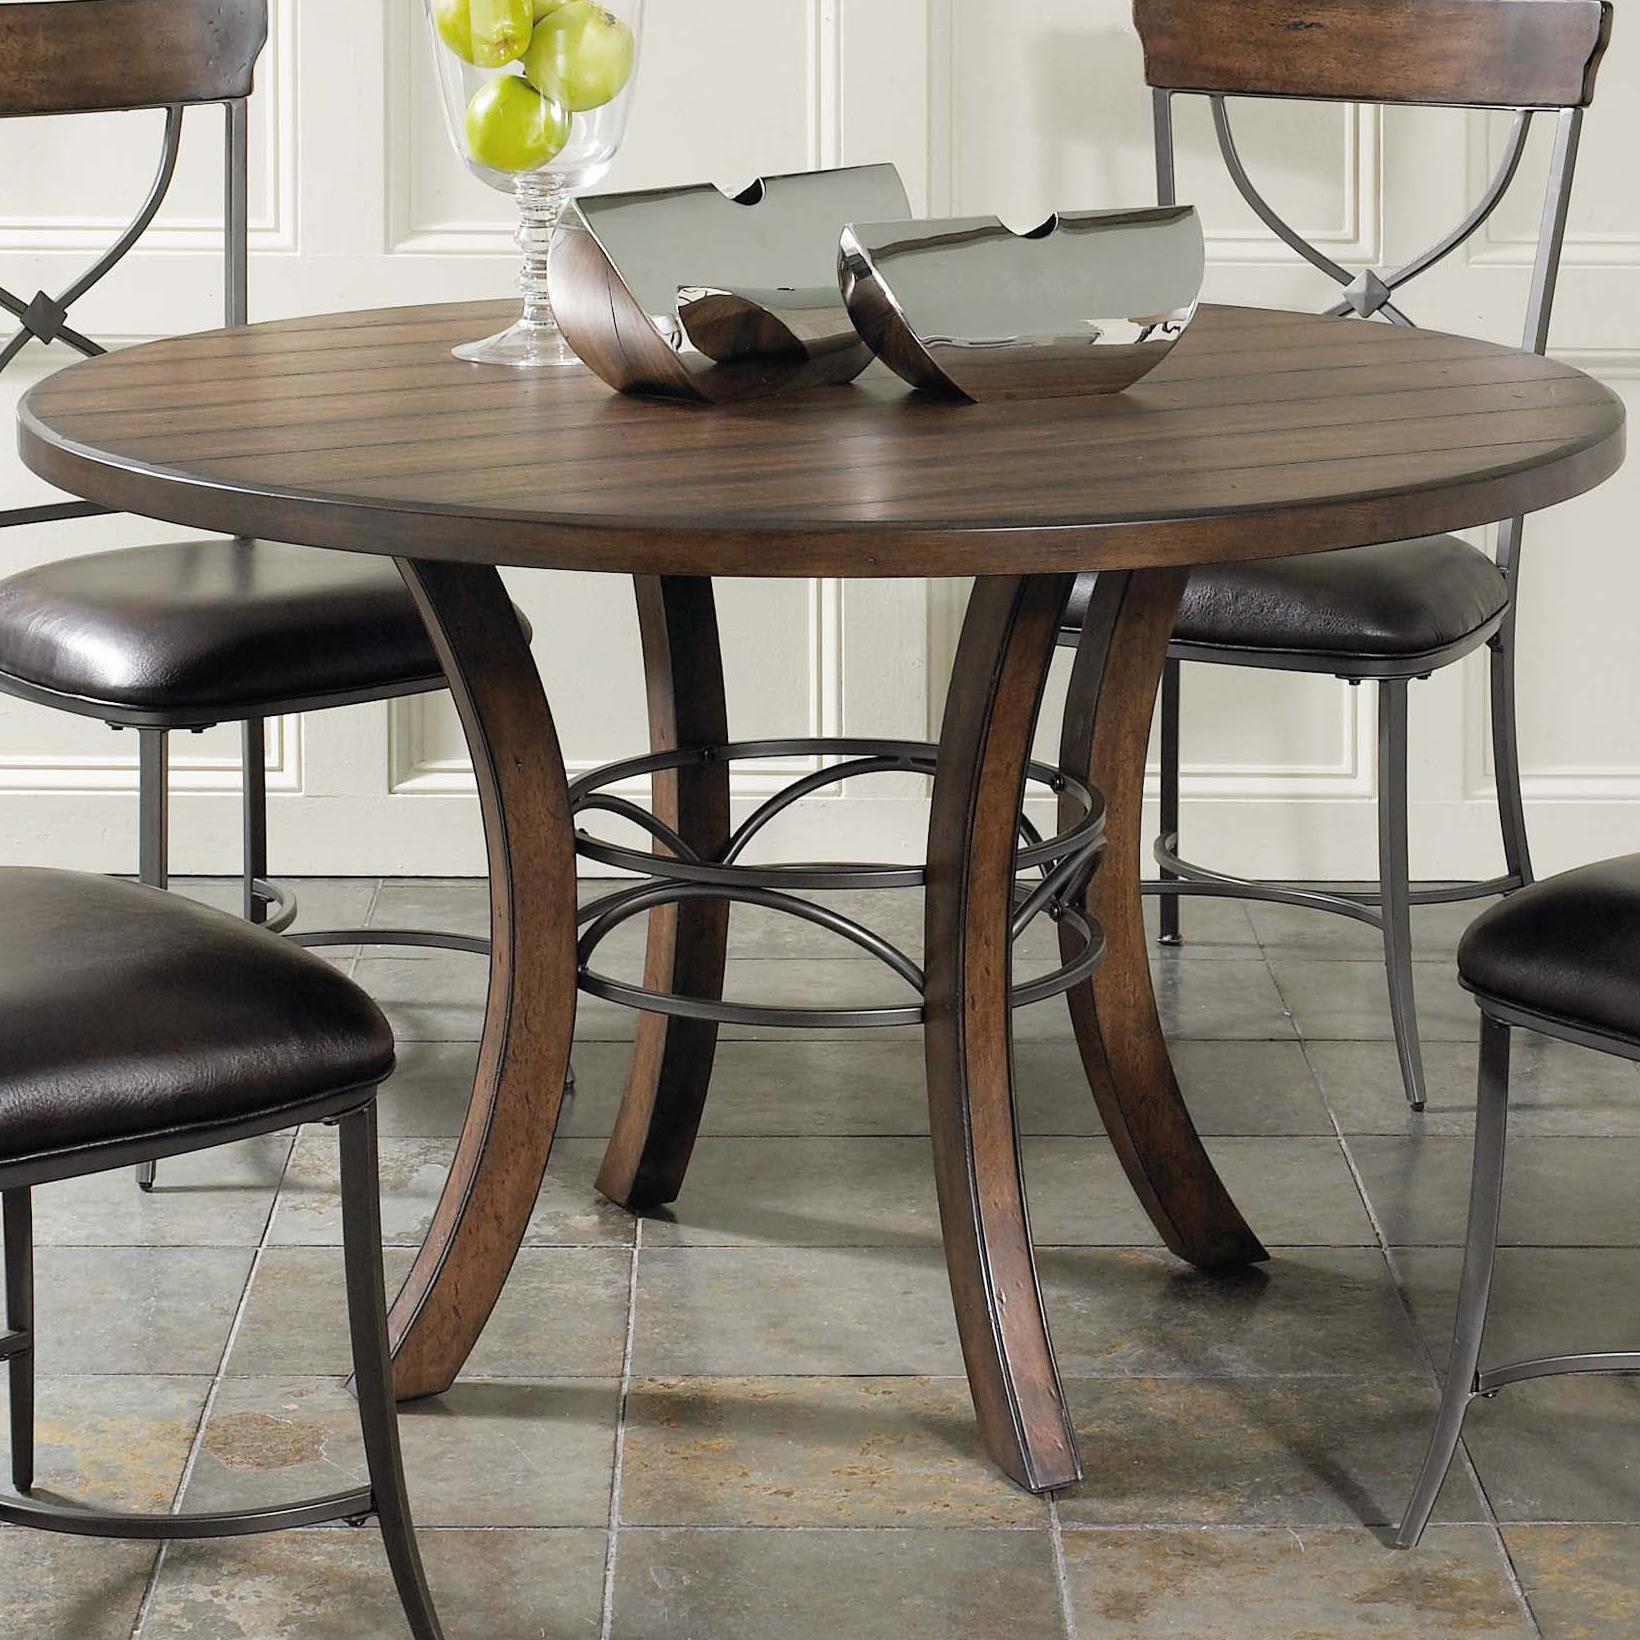 Round Kitchen Tables: Round Wood Dining Table With Metal Acent Base By Hillsdale